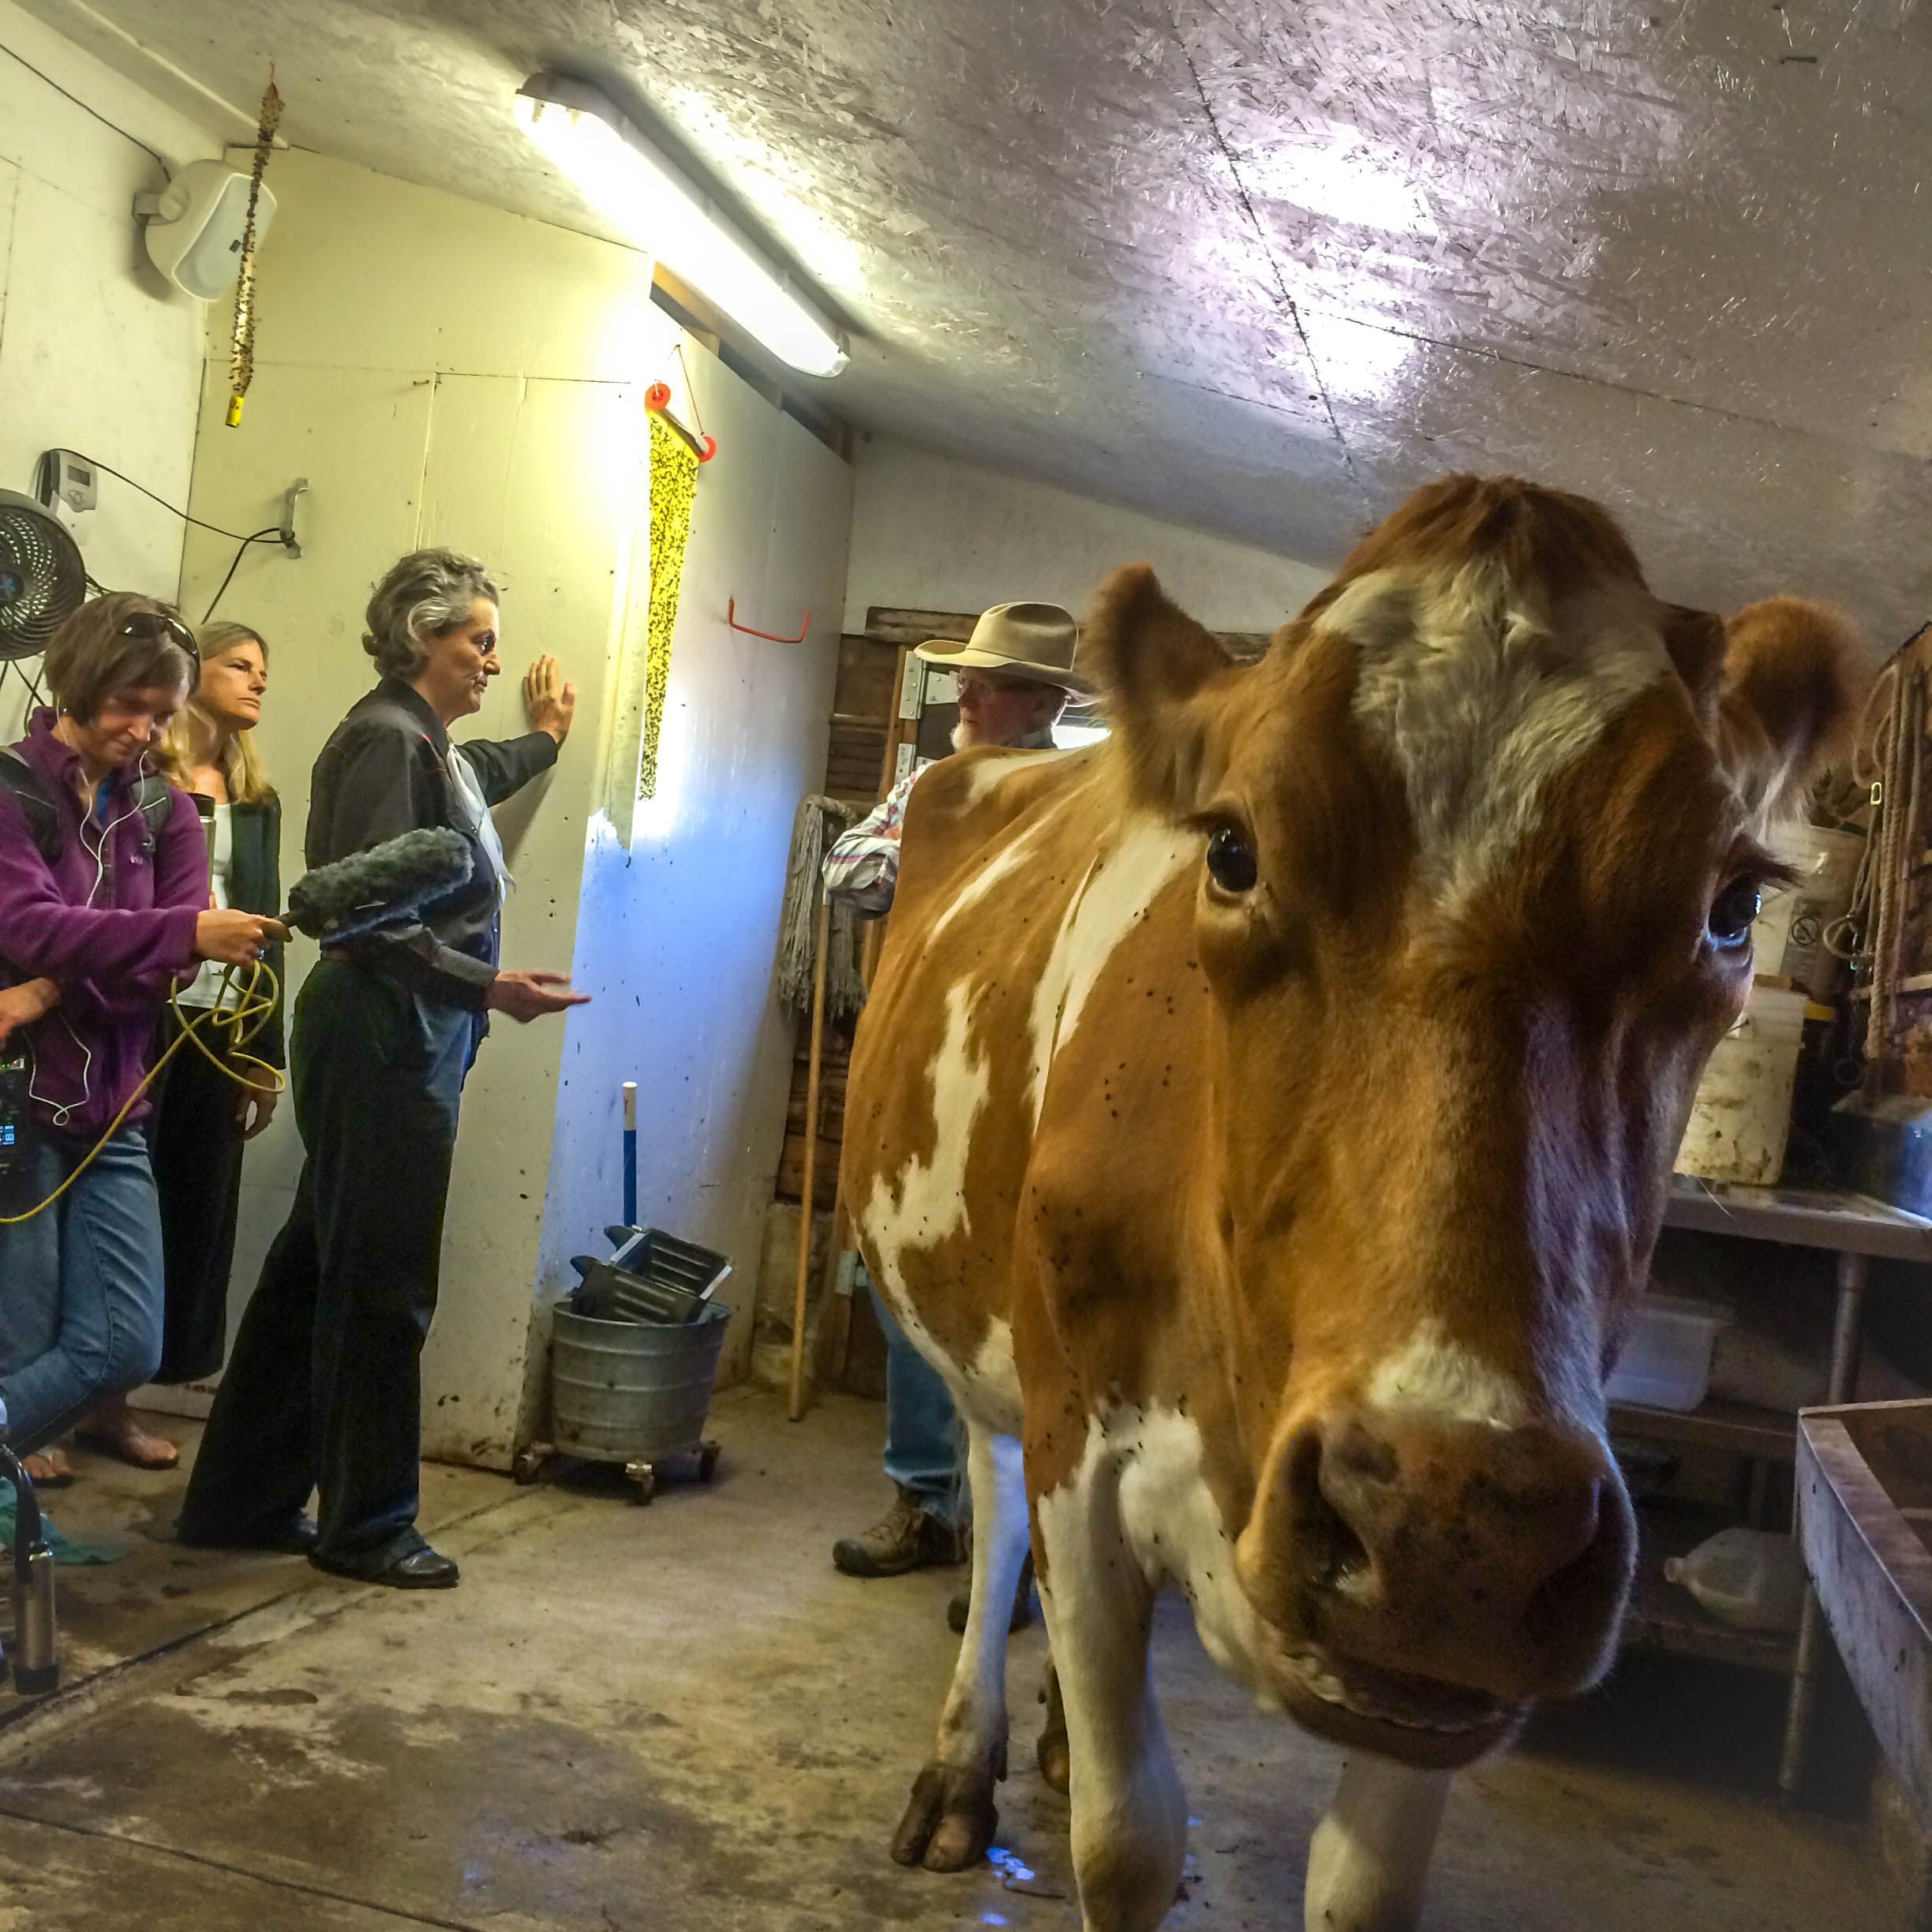 """Photo of """"Ruby"""" the dairy cow and from left to right; Marci Krivonen from Aspen Public Radio, Sally Bernard from Ascendigo, Dr. Temple Grandin from Colorado State University and Brook LeVan from Sustainable Settings. Photo by Rob Hollis from Green Line Architects."""